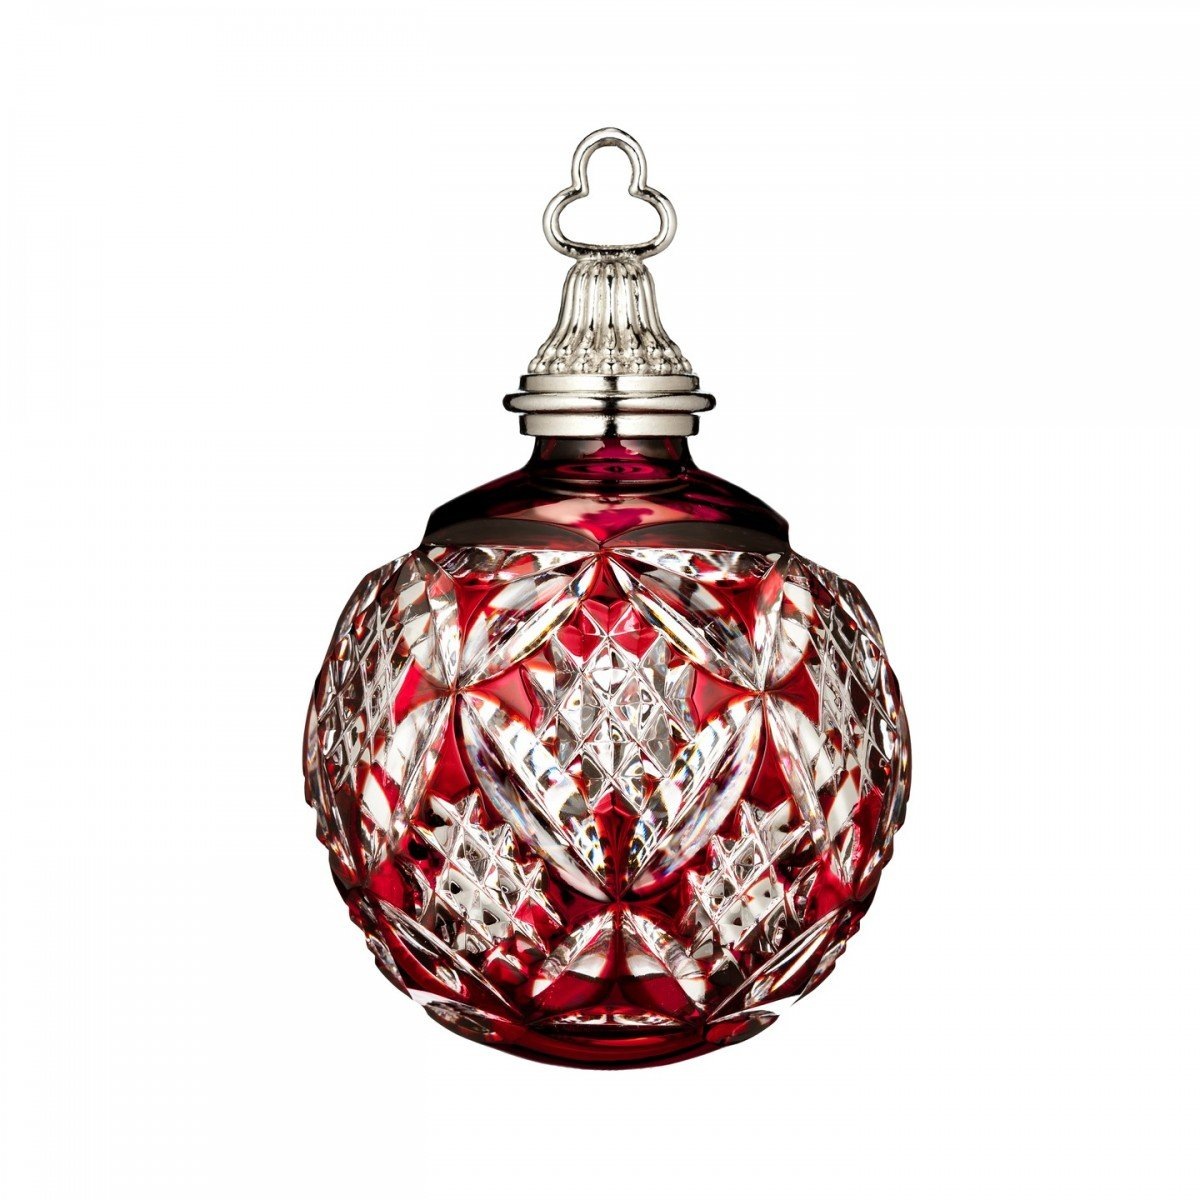 Waterford Annual Red Cased Ball Crystal Christmas Ornament